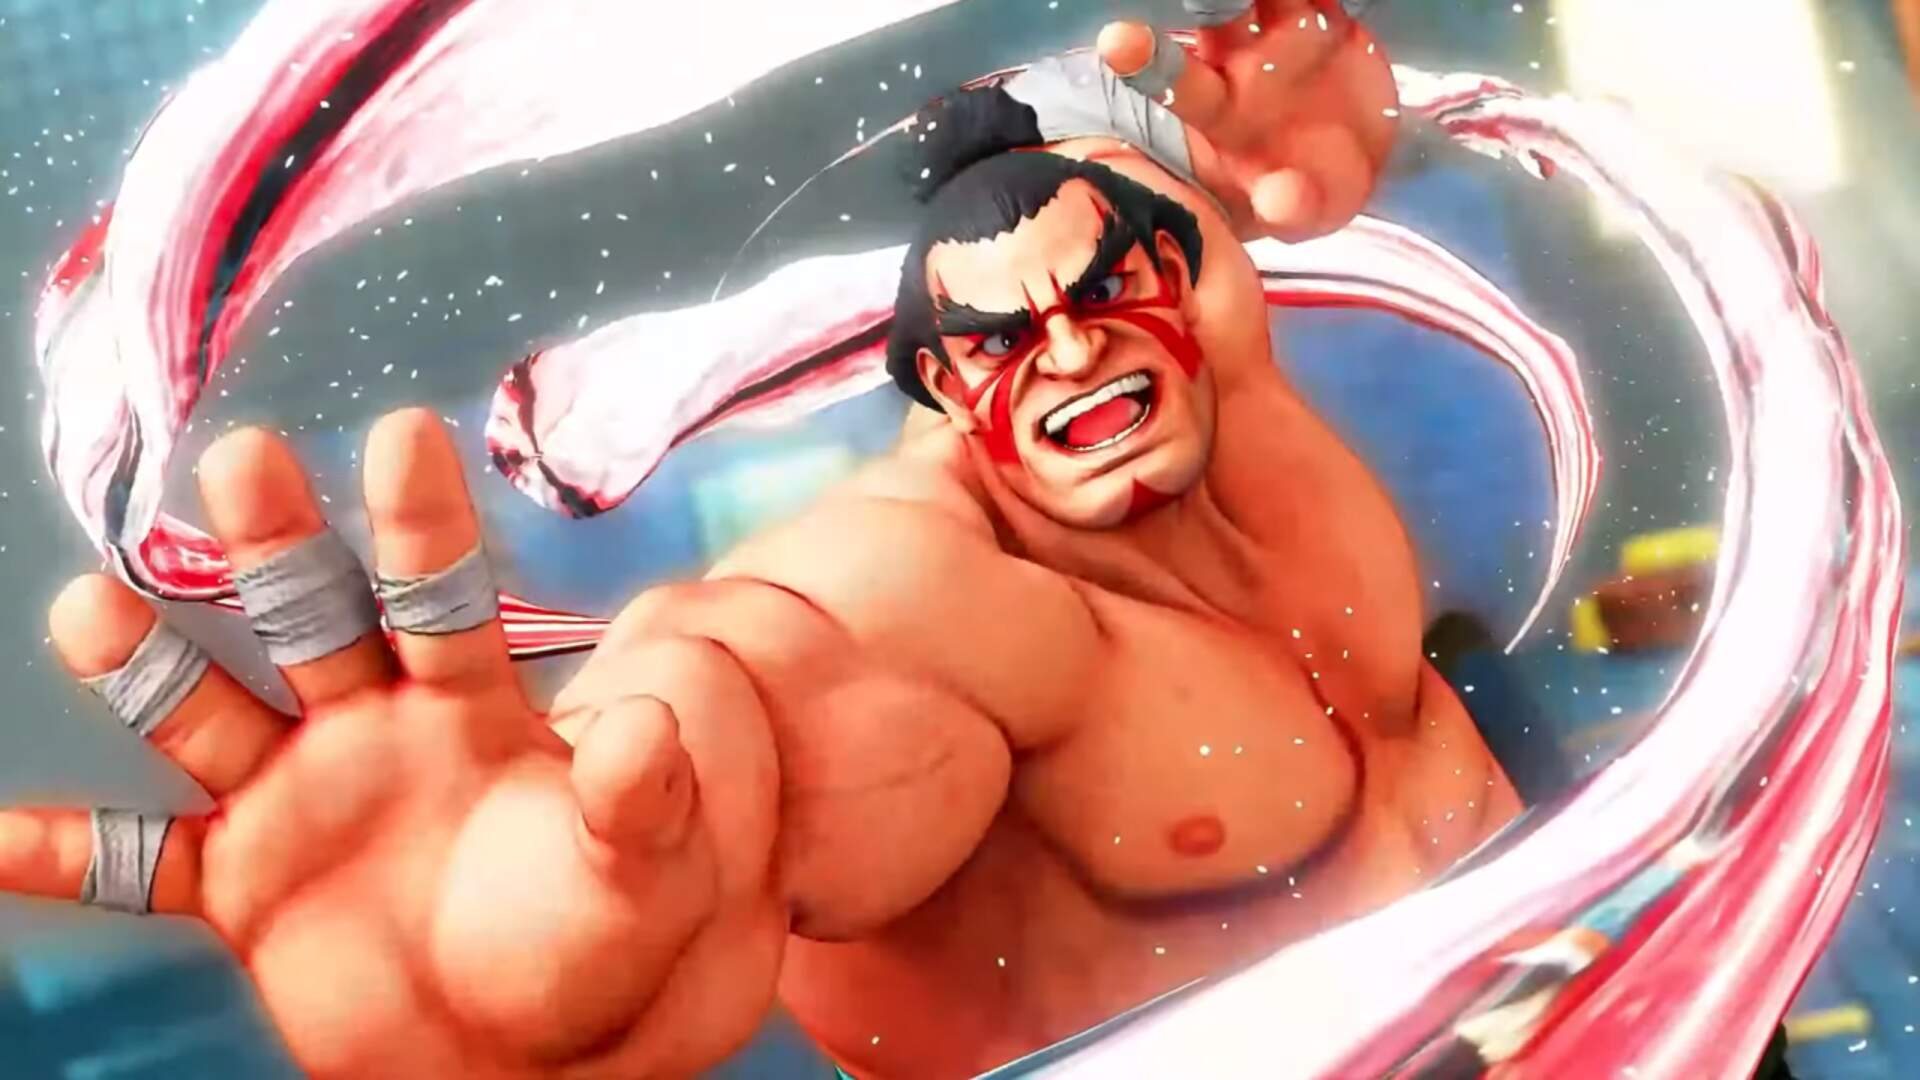 Three New Street Fighter 5 Characters Leak Ahead Of Evo 2019 [Update]